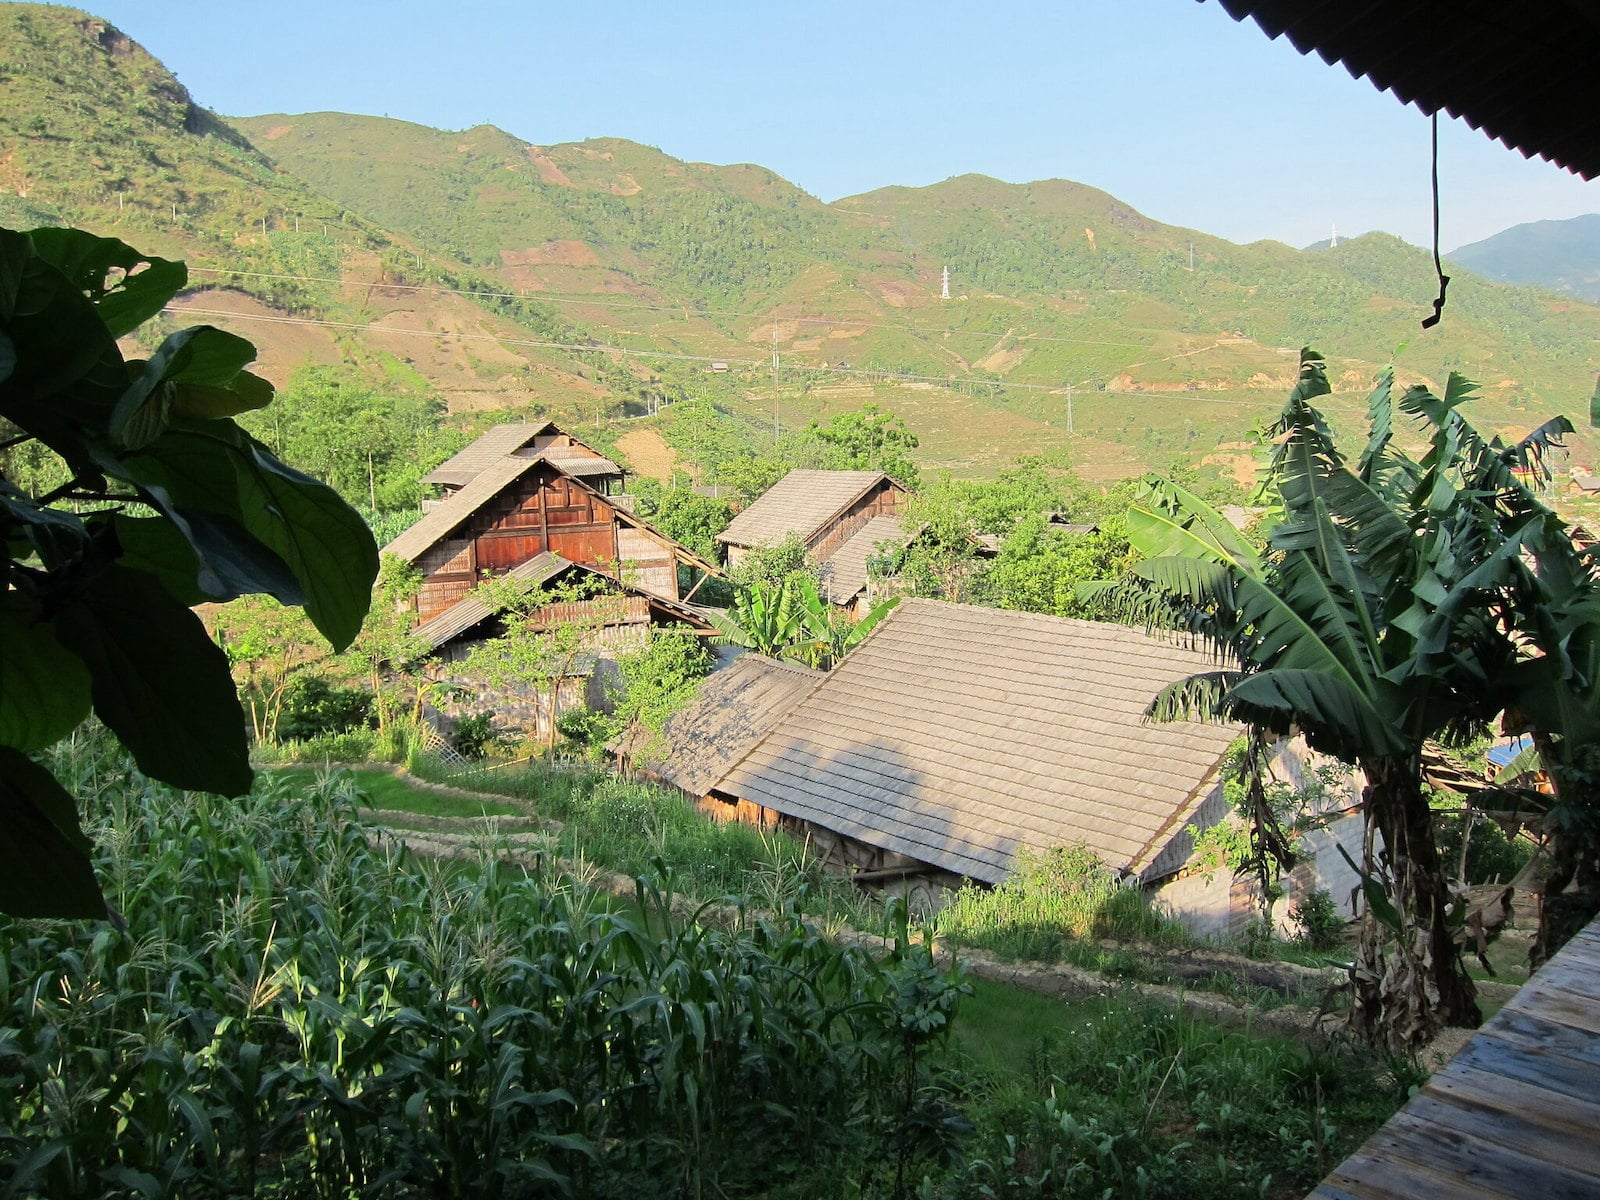 Image of a homestay in the mountains in Sapa, Vietnam